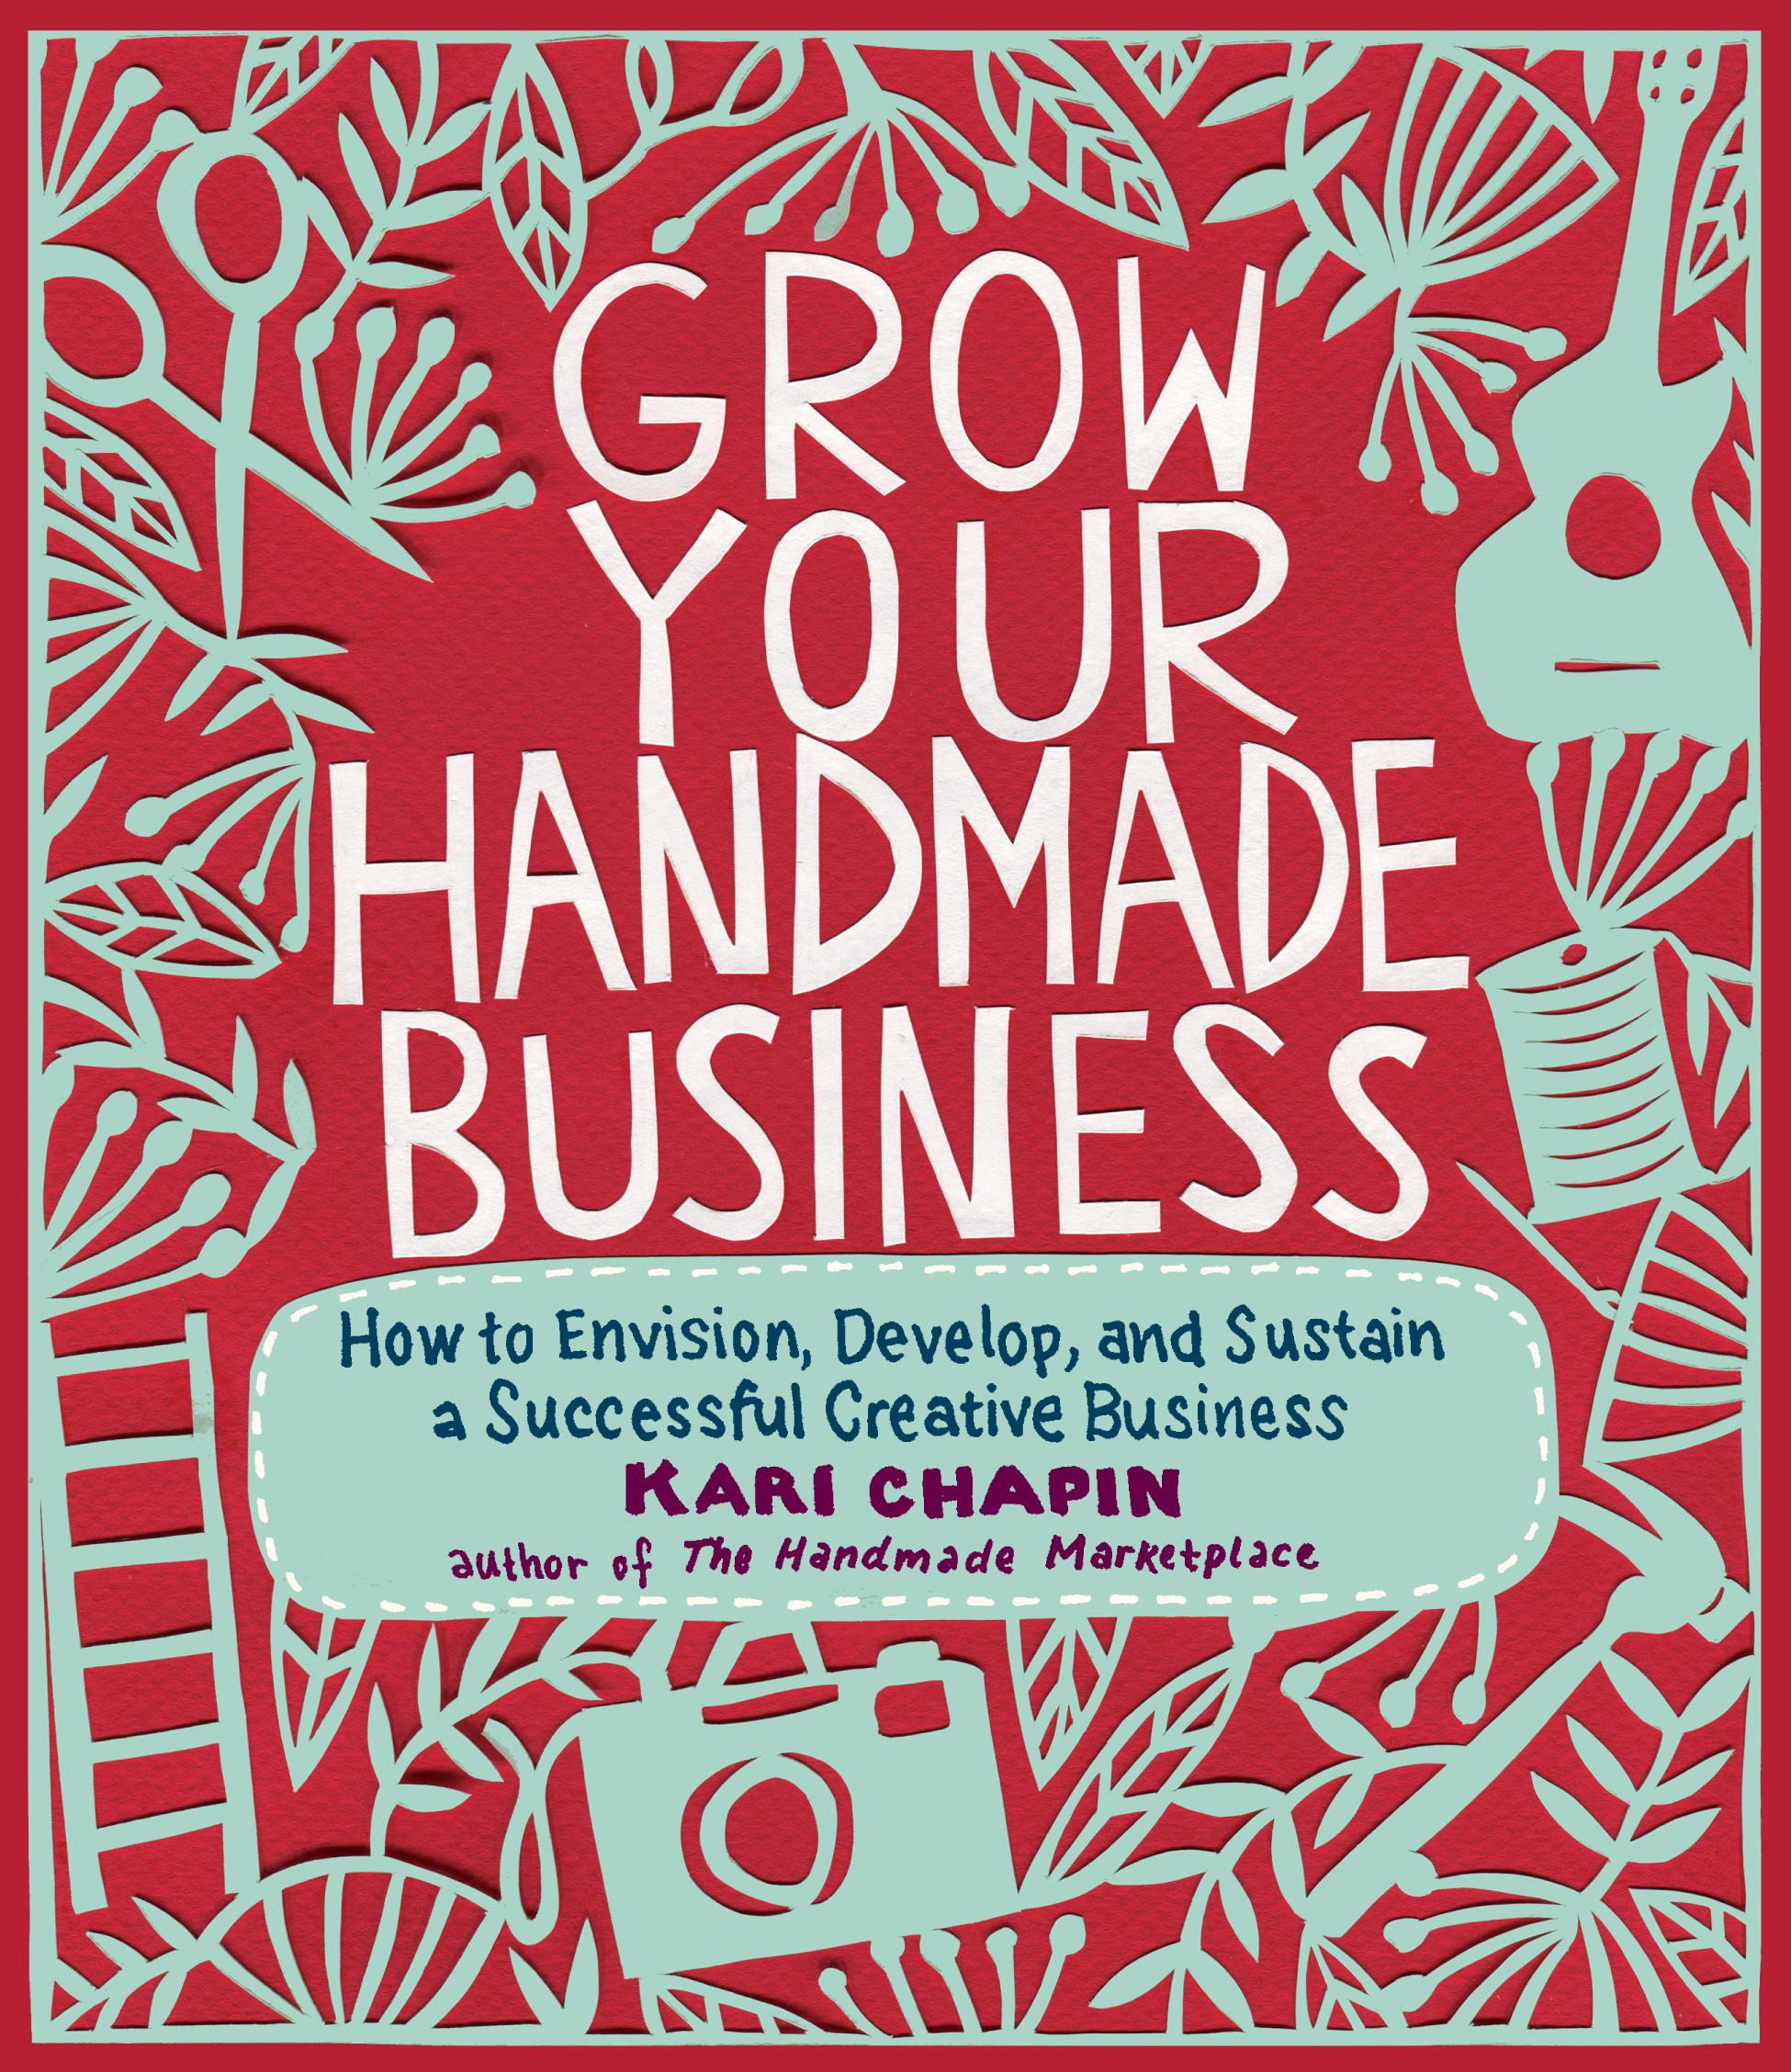 Grow Your Handmade Business How to Envision, Develop, and Sustain a Successful Creative Business - Kari Chapin